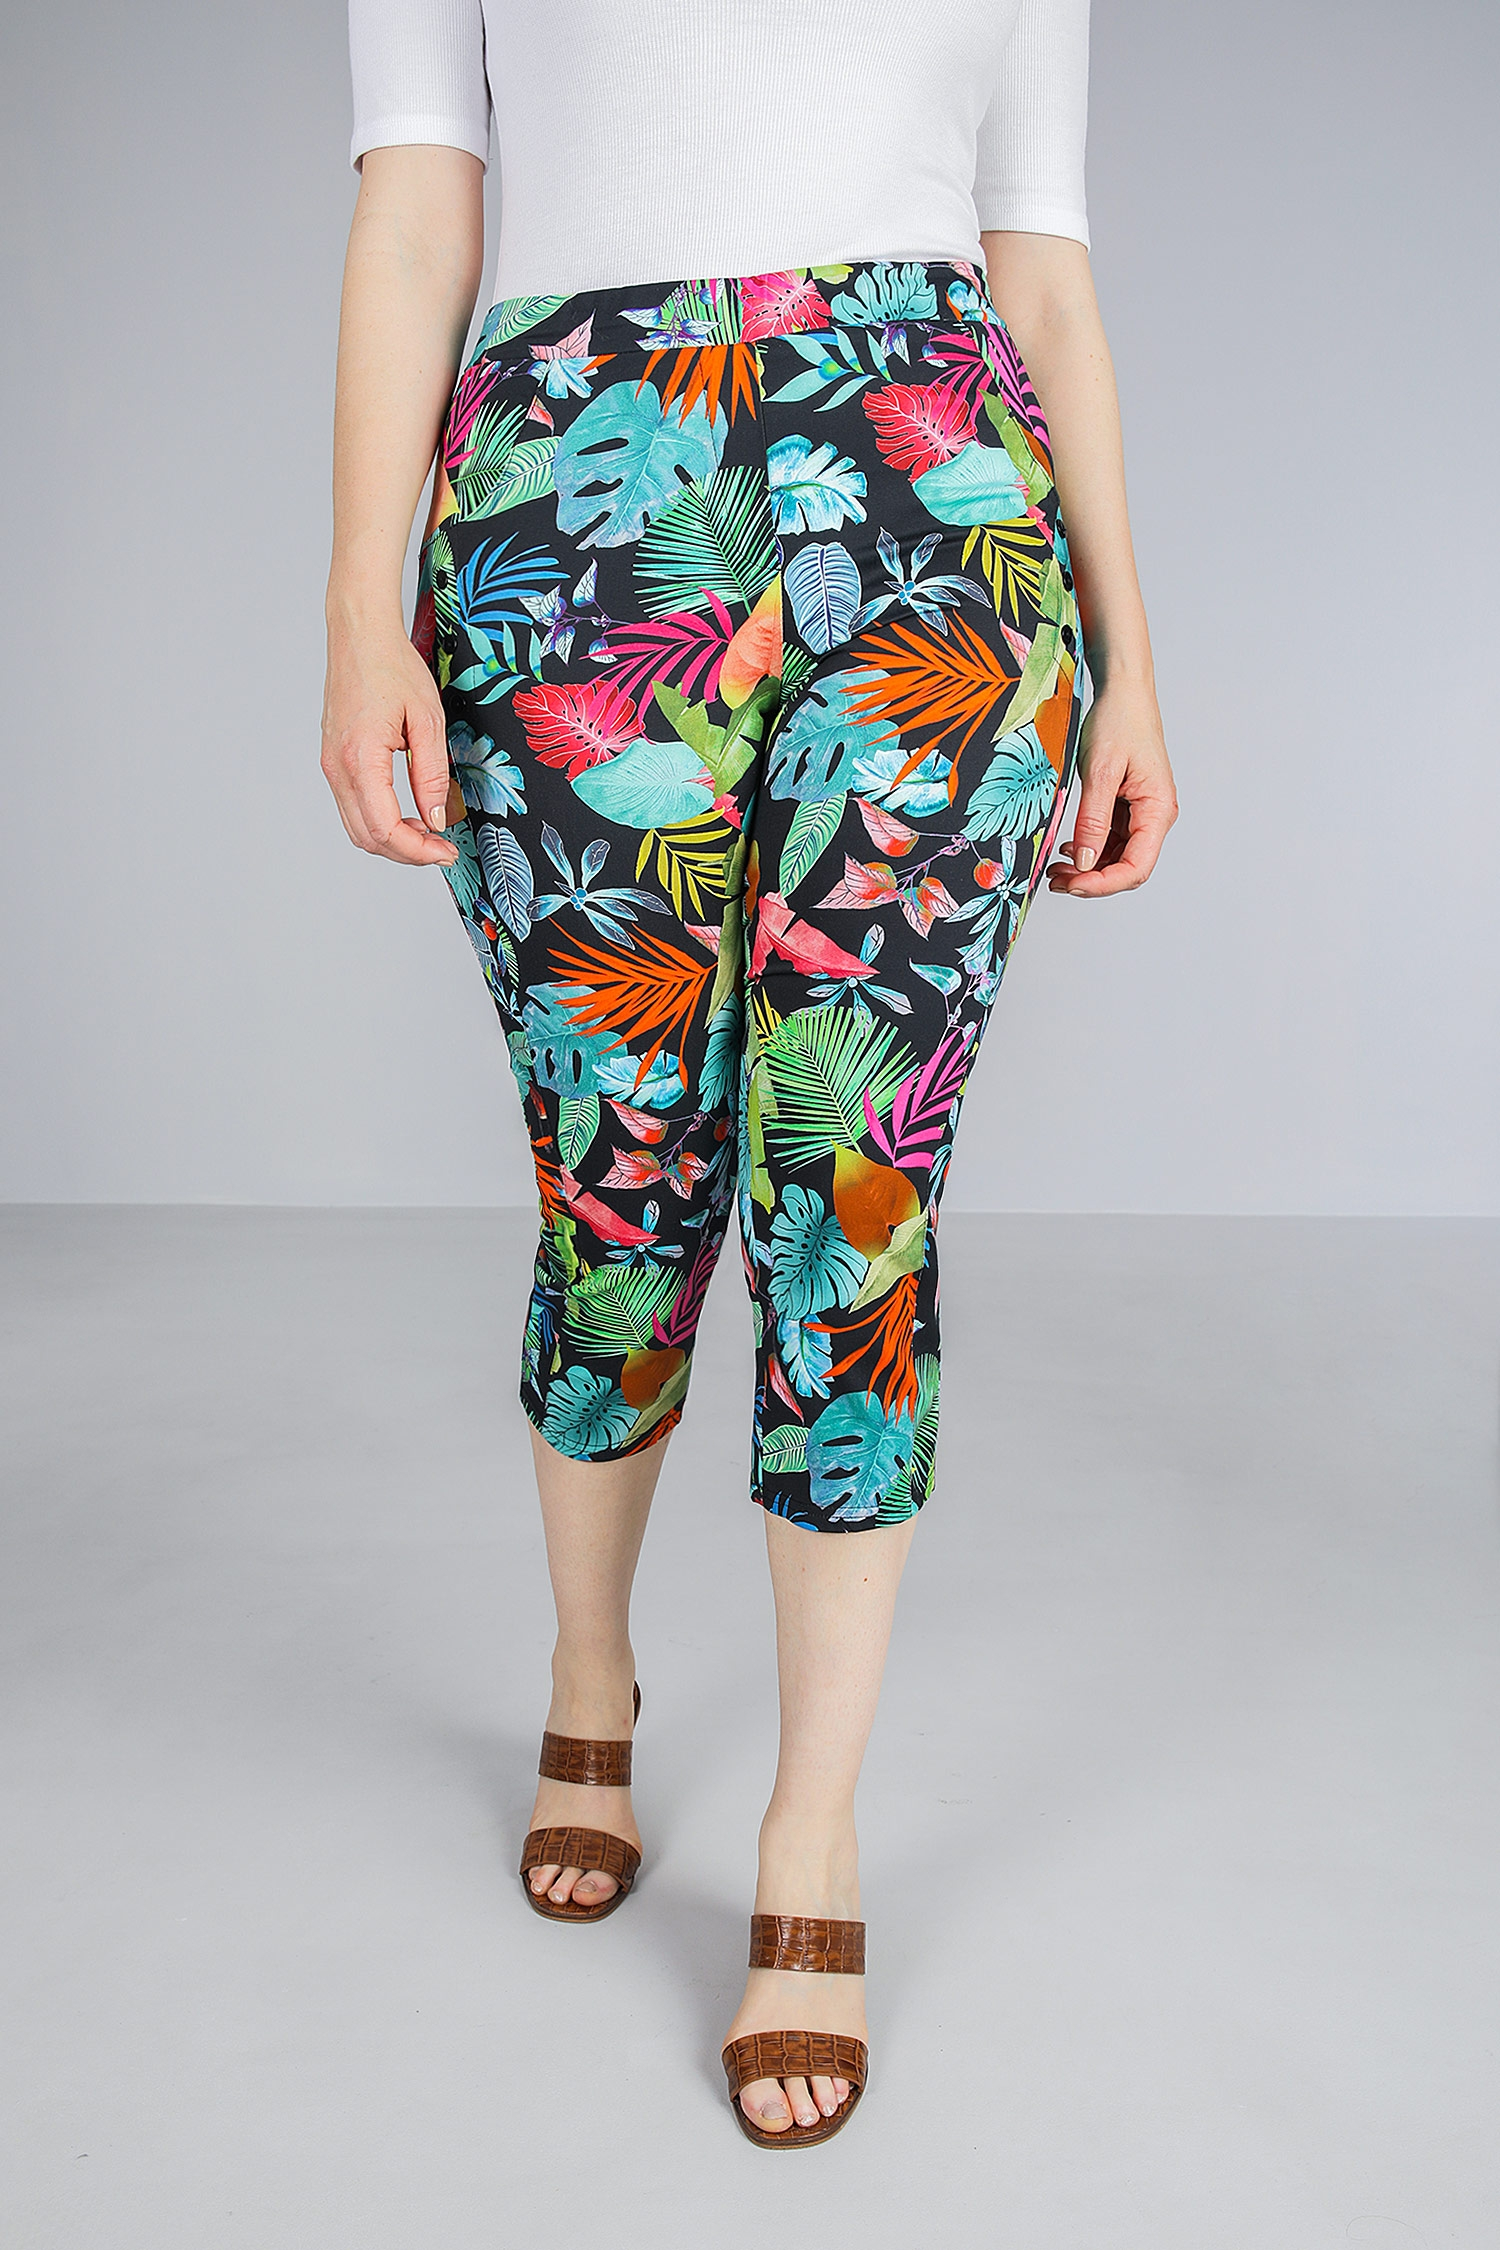 7/8 floral print trousers